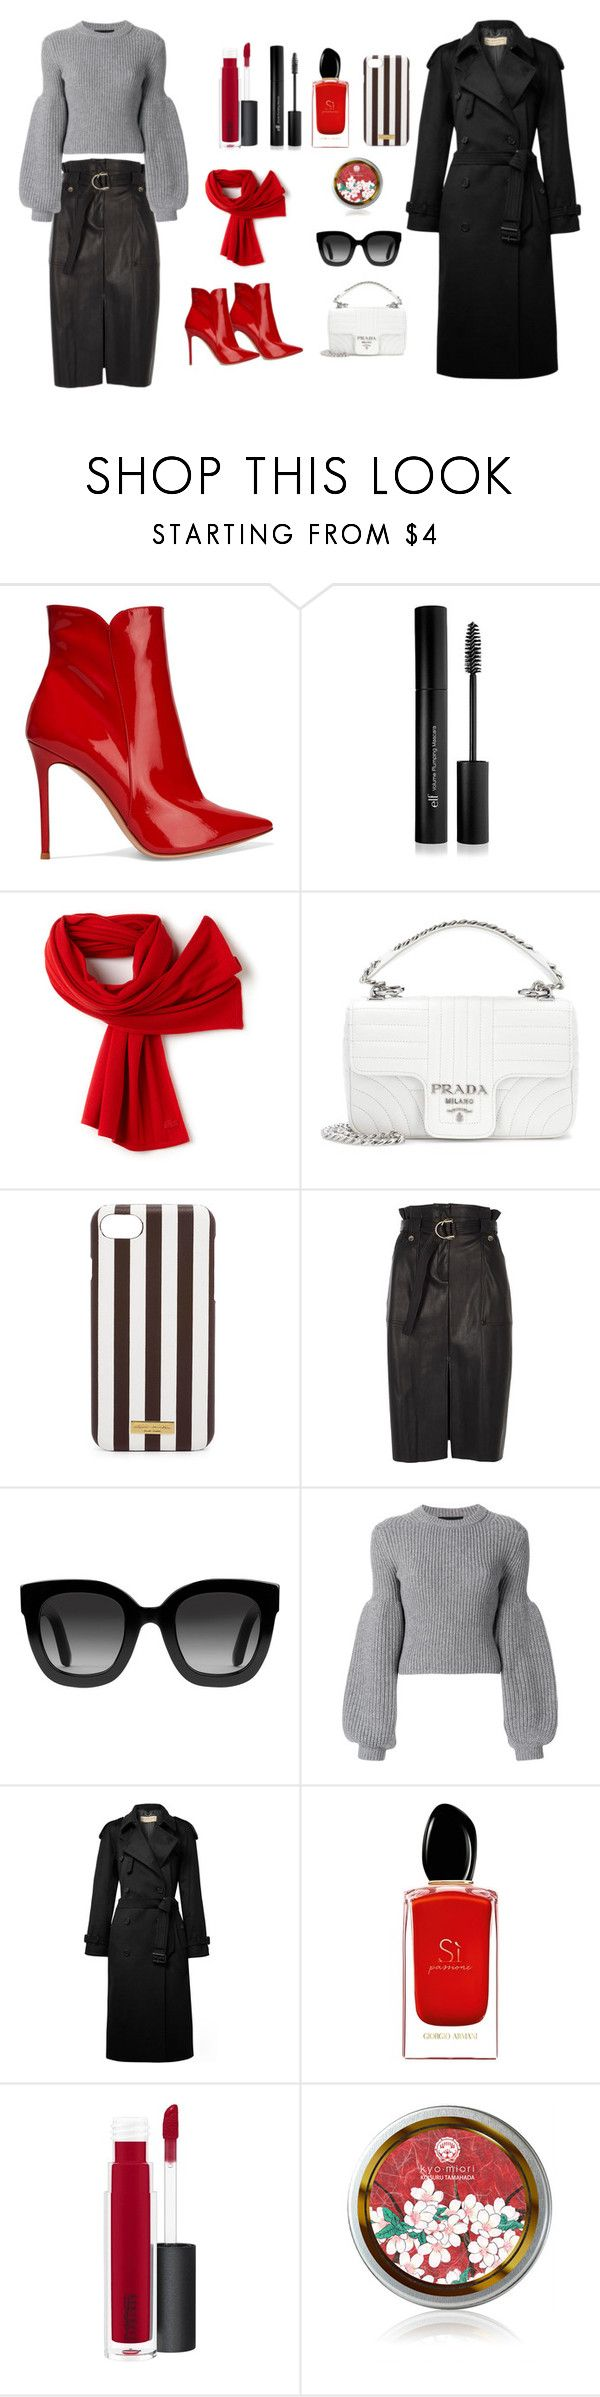 """Scarf and boots in one colour"" by polychampion-805 ❤ liked on Polyvore featuring Gianvito Rossi, Forever 21, Lacoste, Prada, Henri Bendel, River Island, Gucci, Alexander Wang, Burberry and Giorgio Armani"